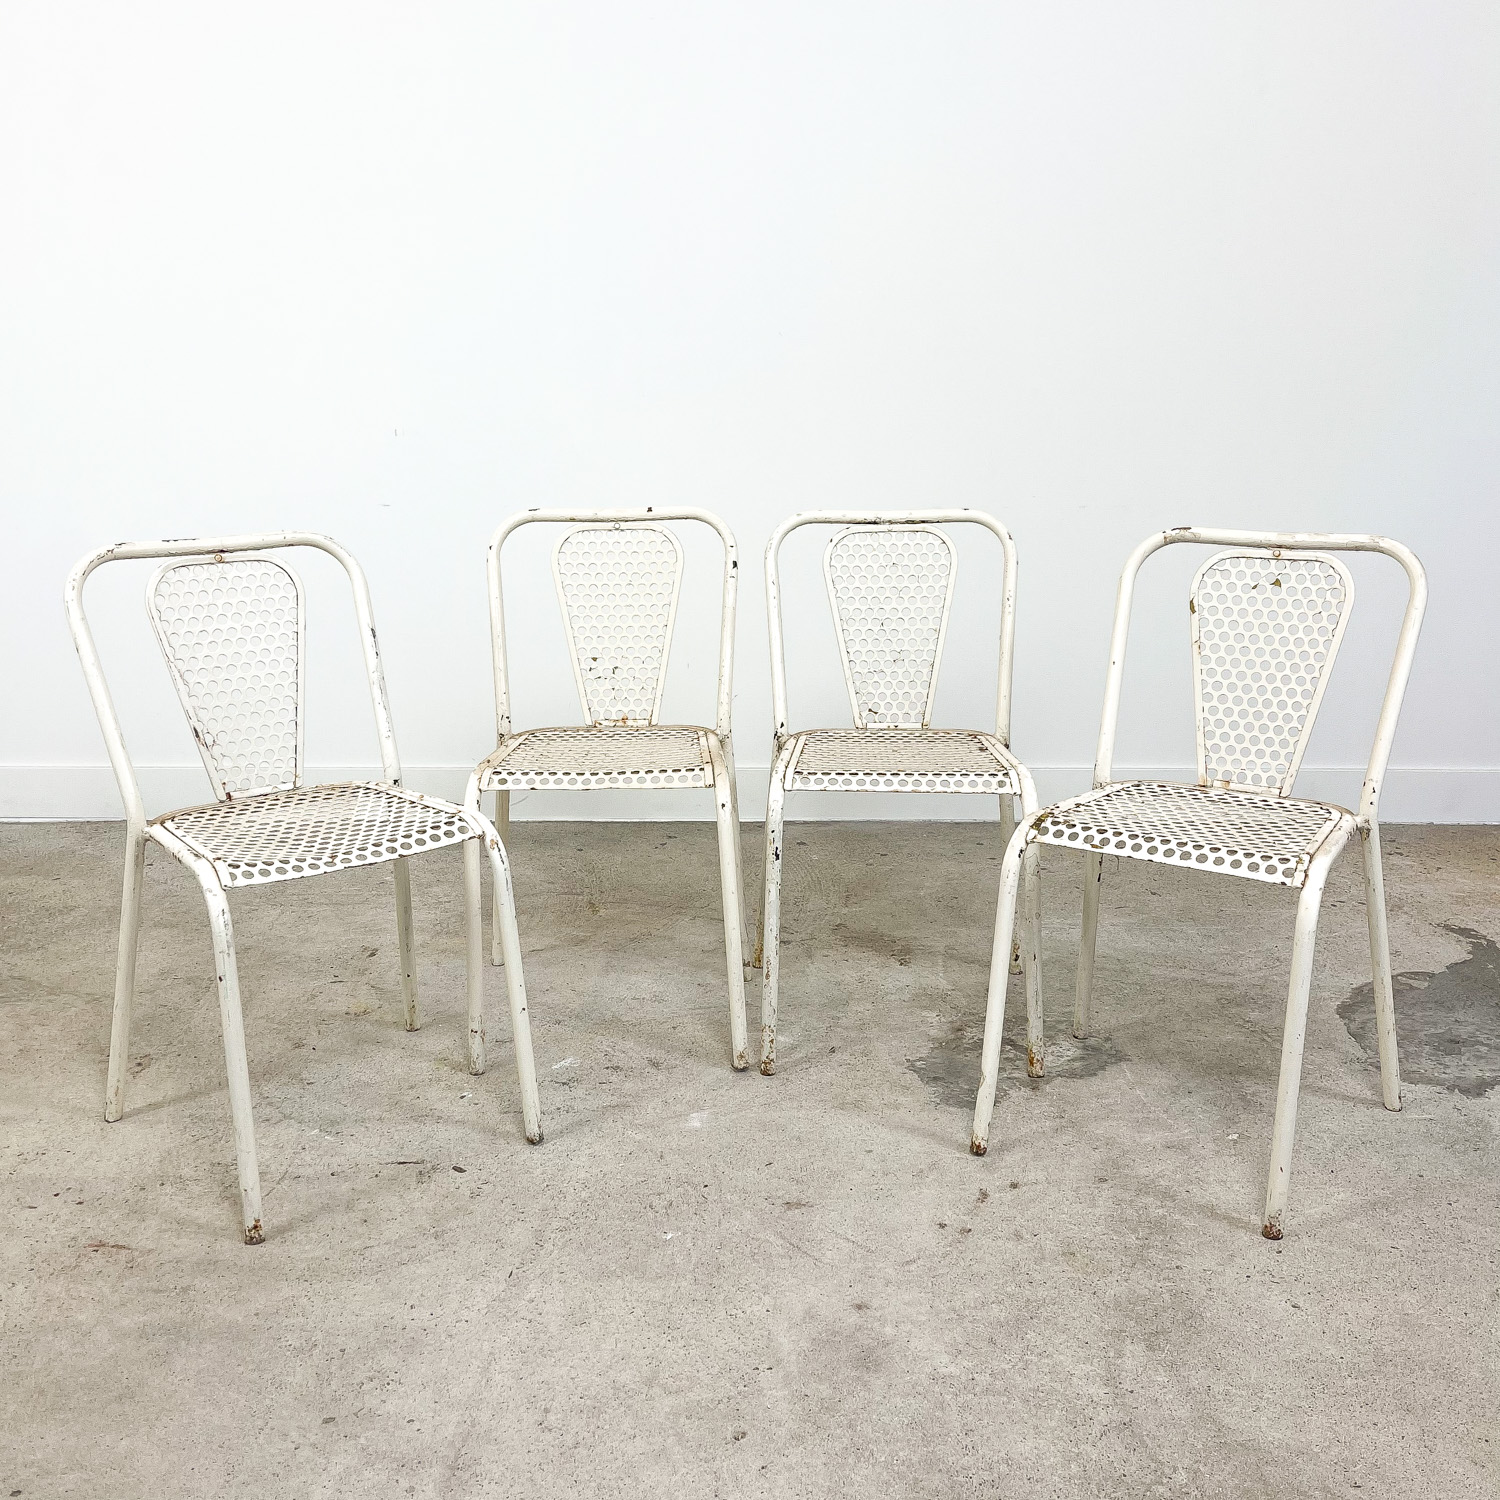 Set of four vintage industrial metal bistro chairs by Rene malaval